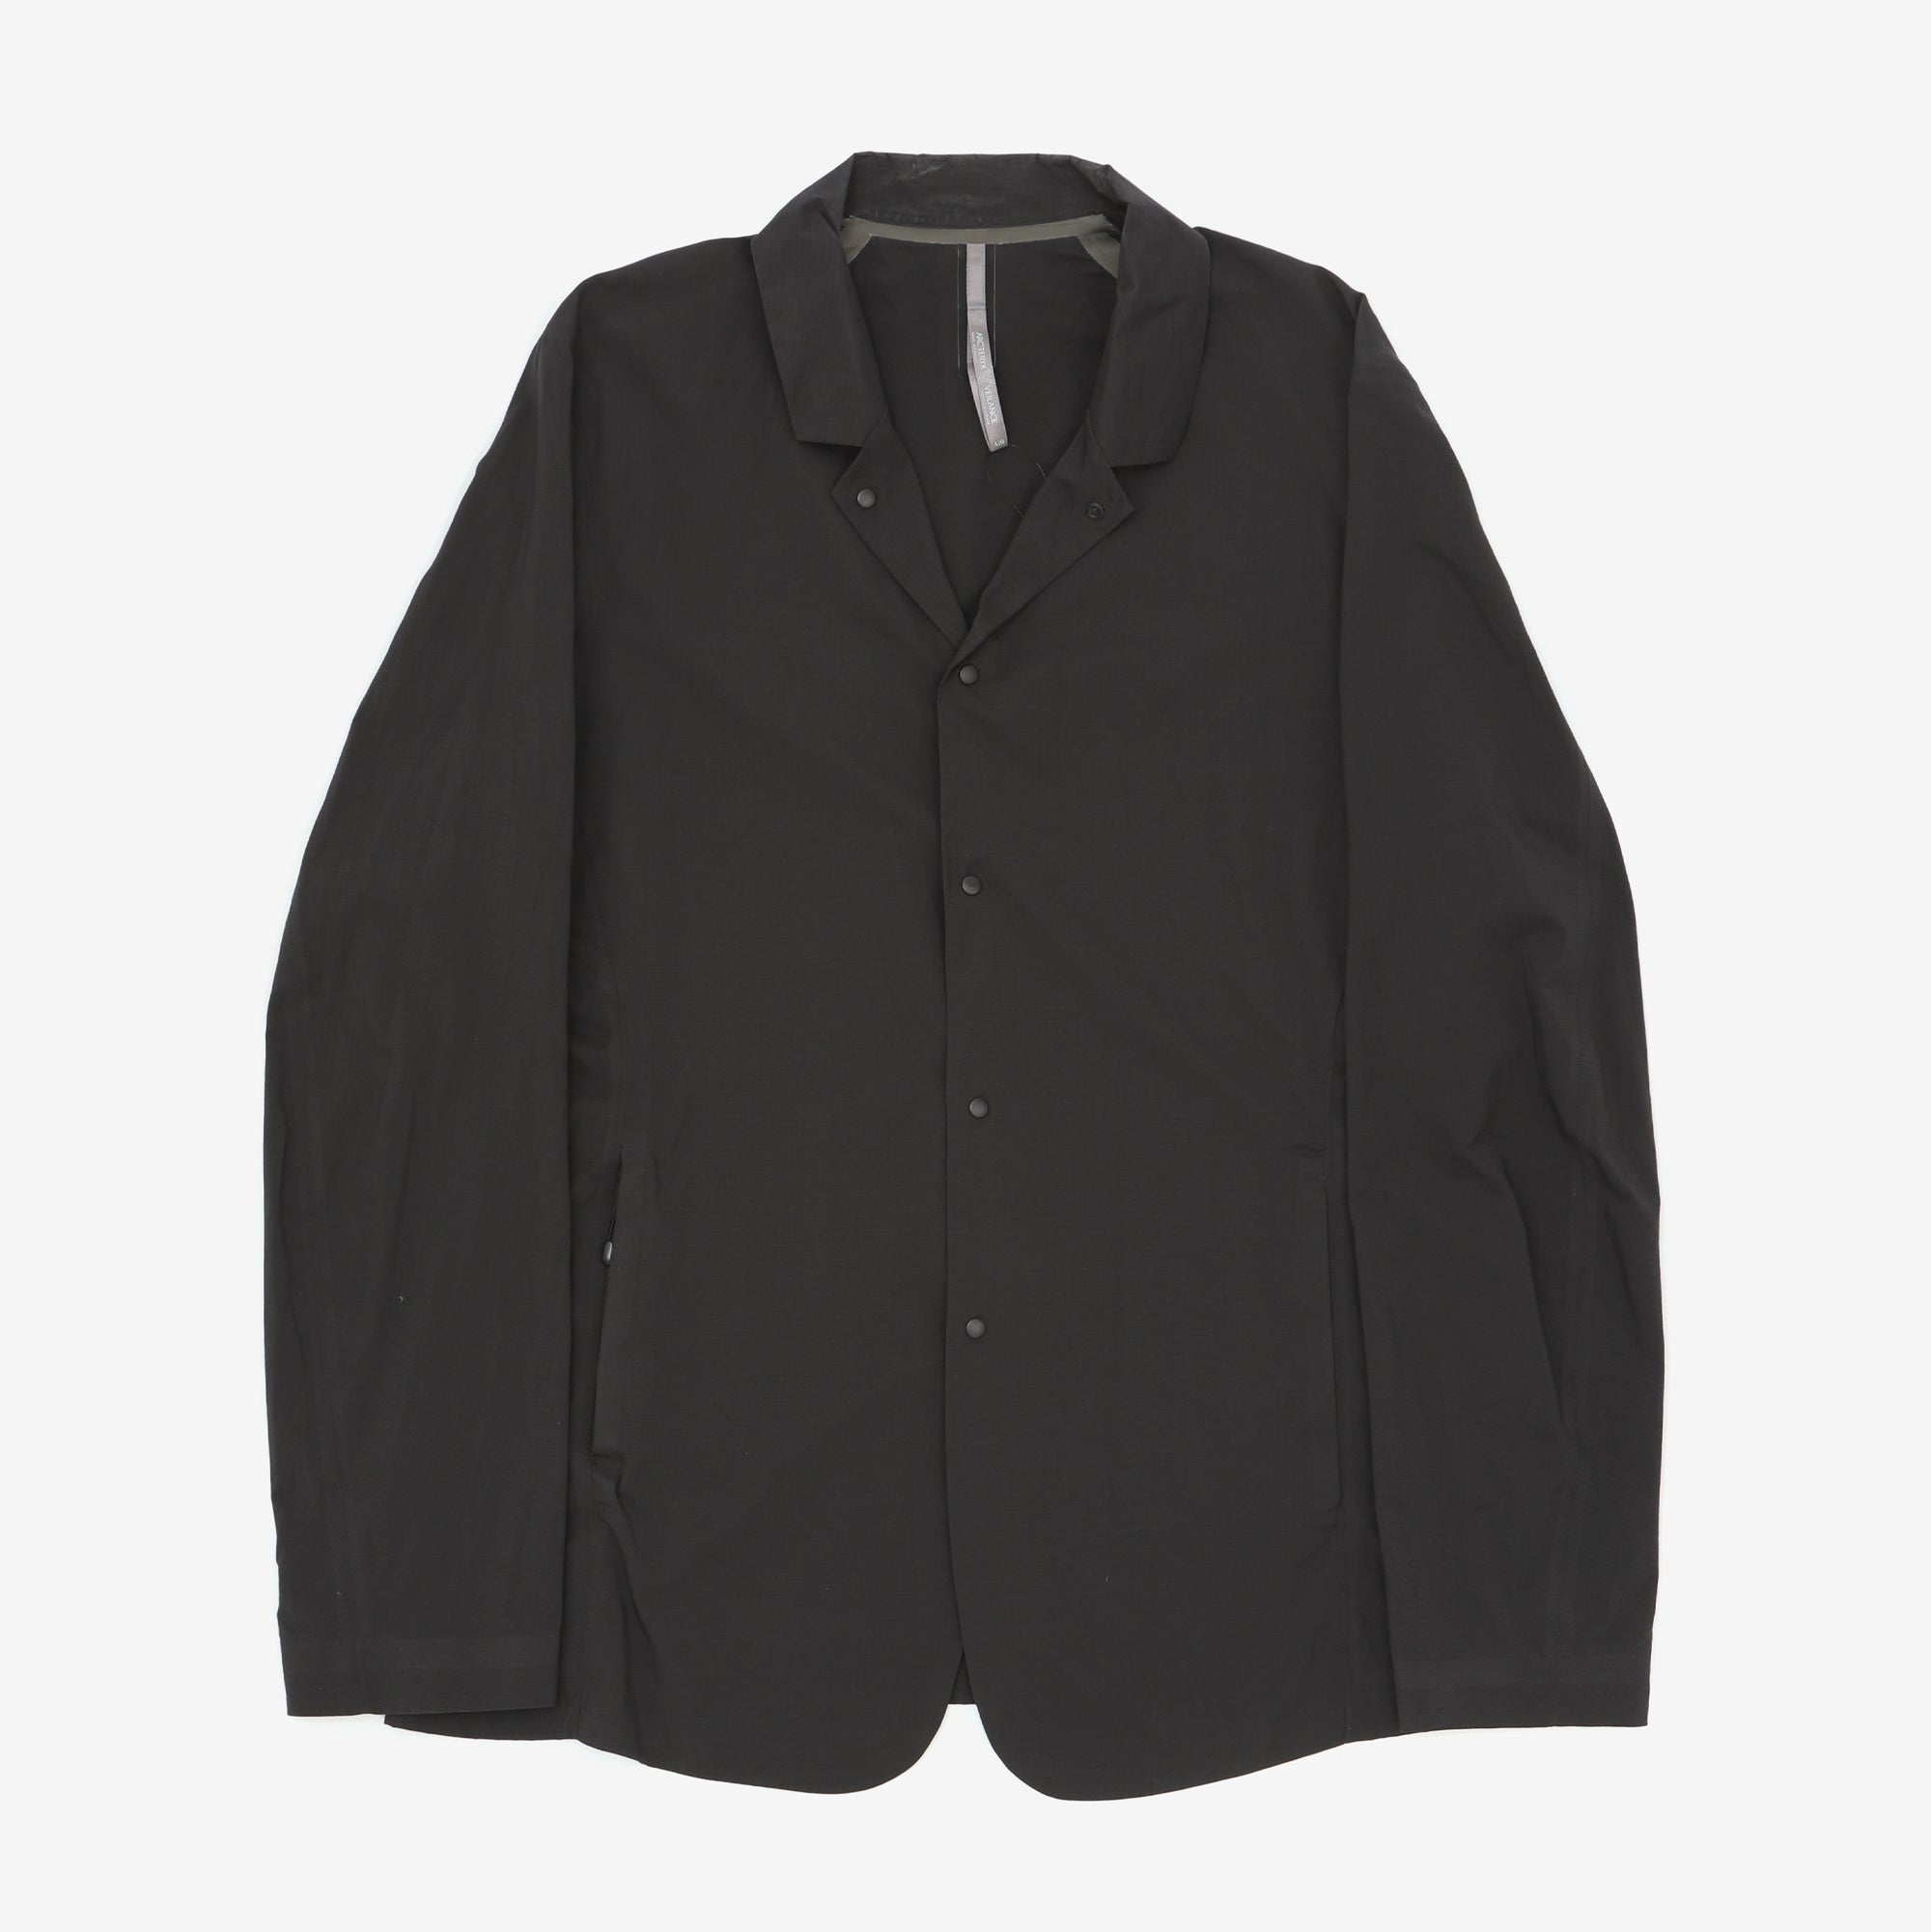 Ripstop Nylon Shirt